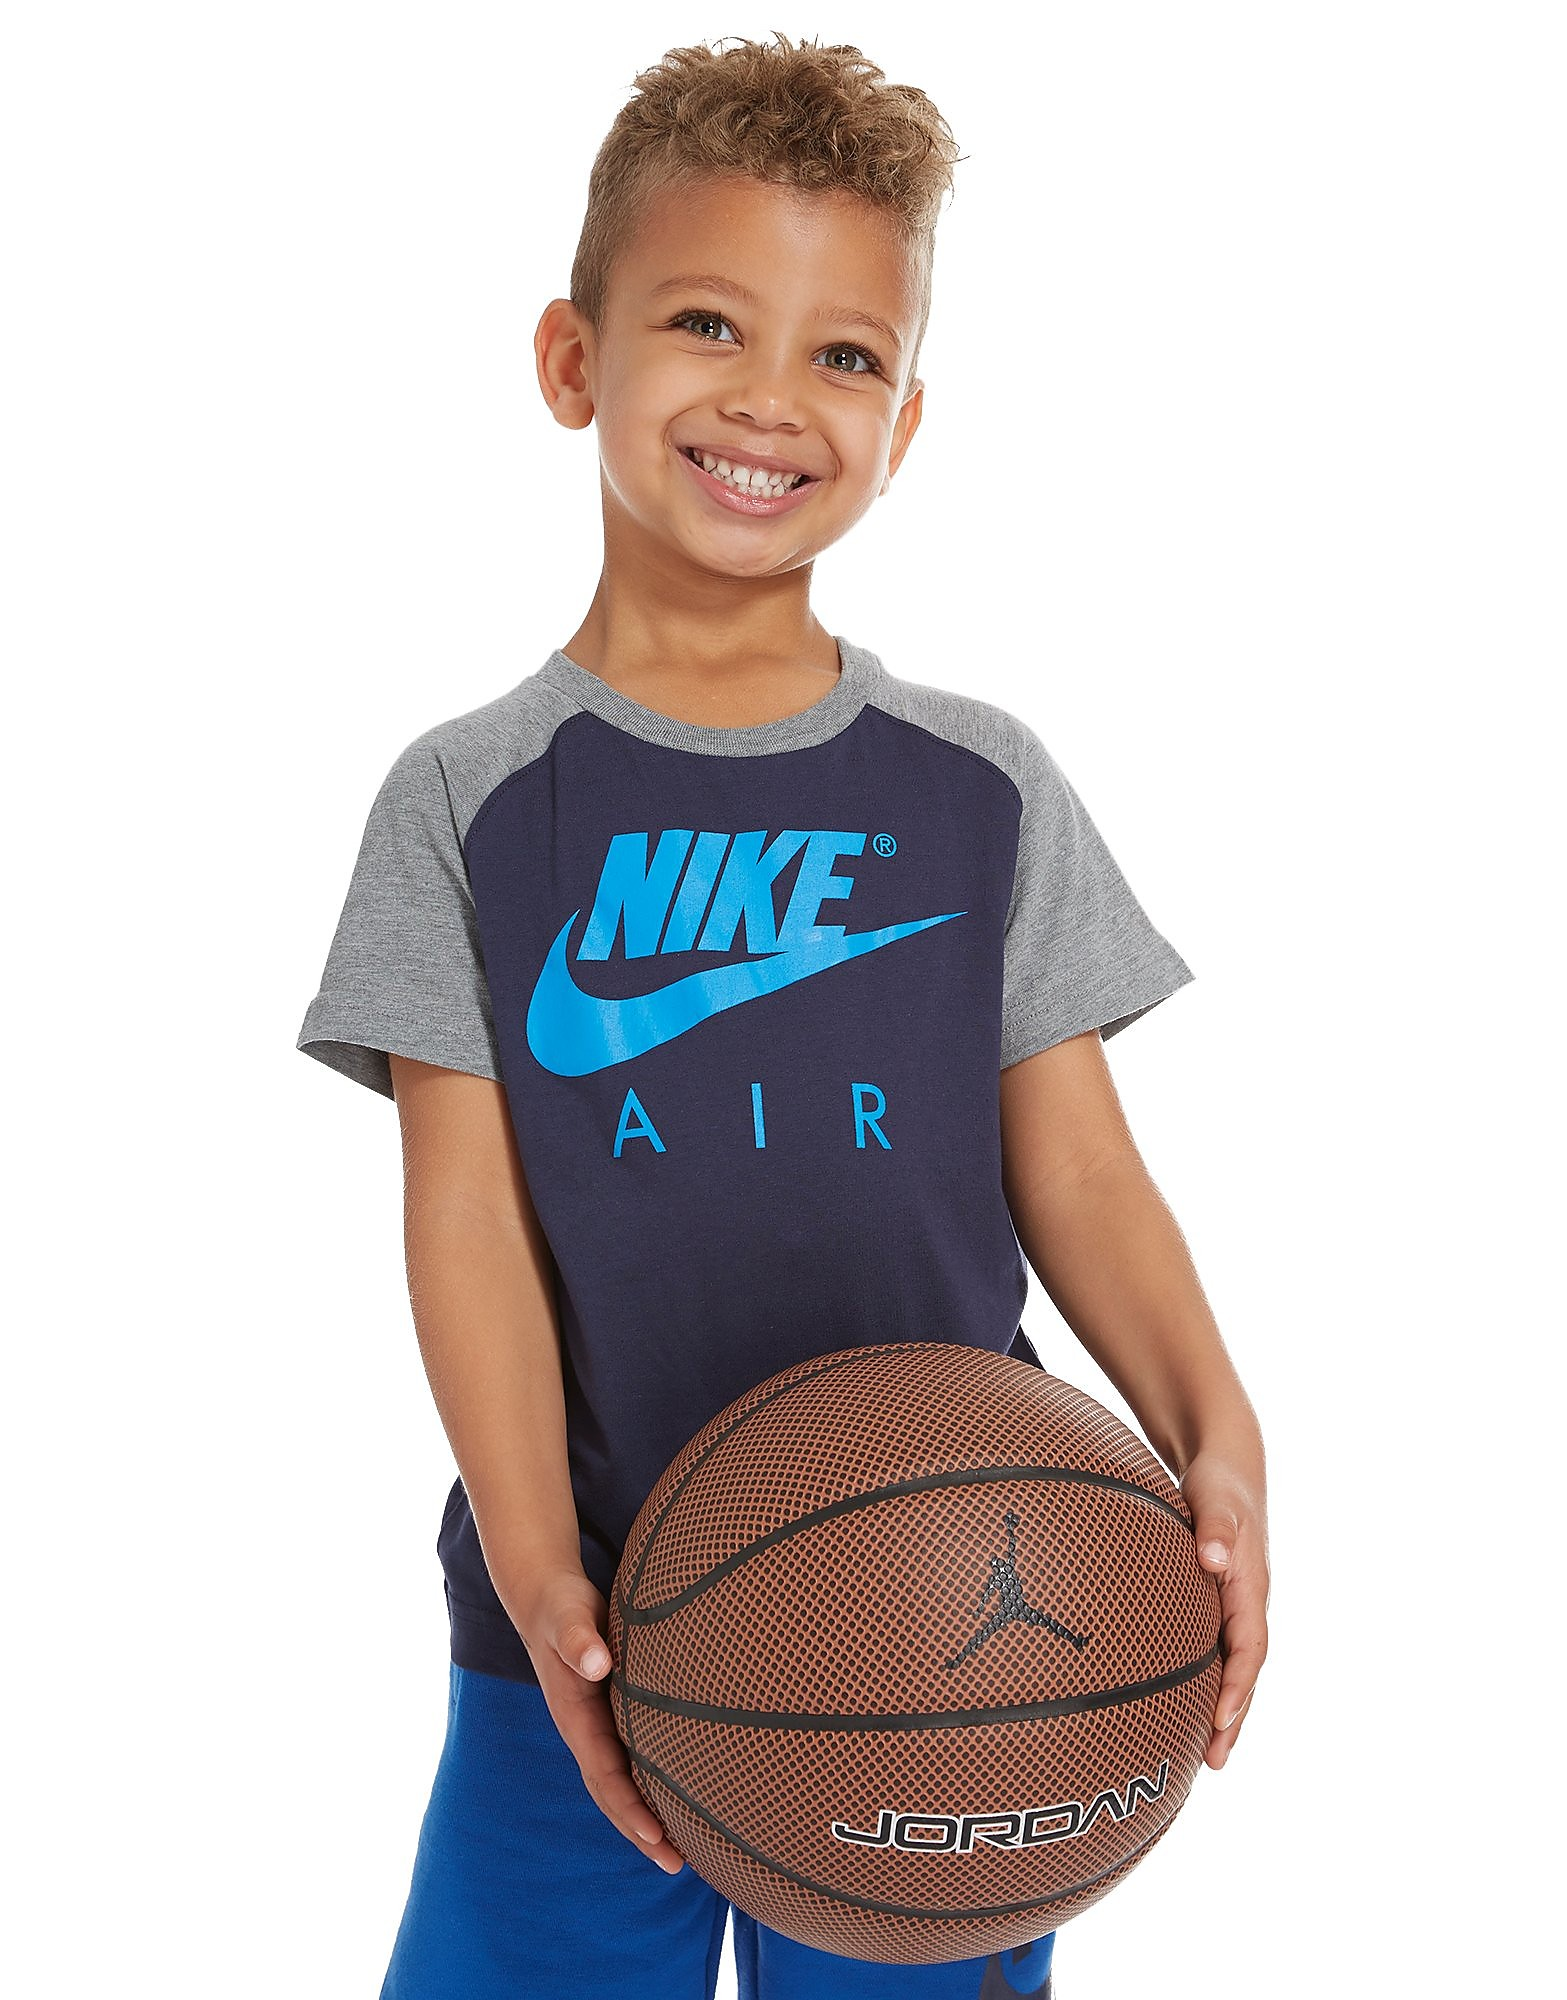 Nike SB Air Raglan Short Sleeve T-Shirt Children